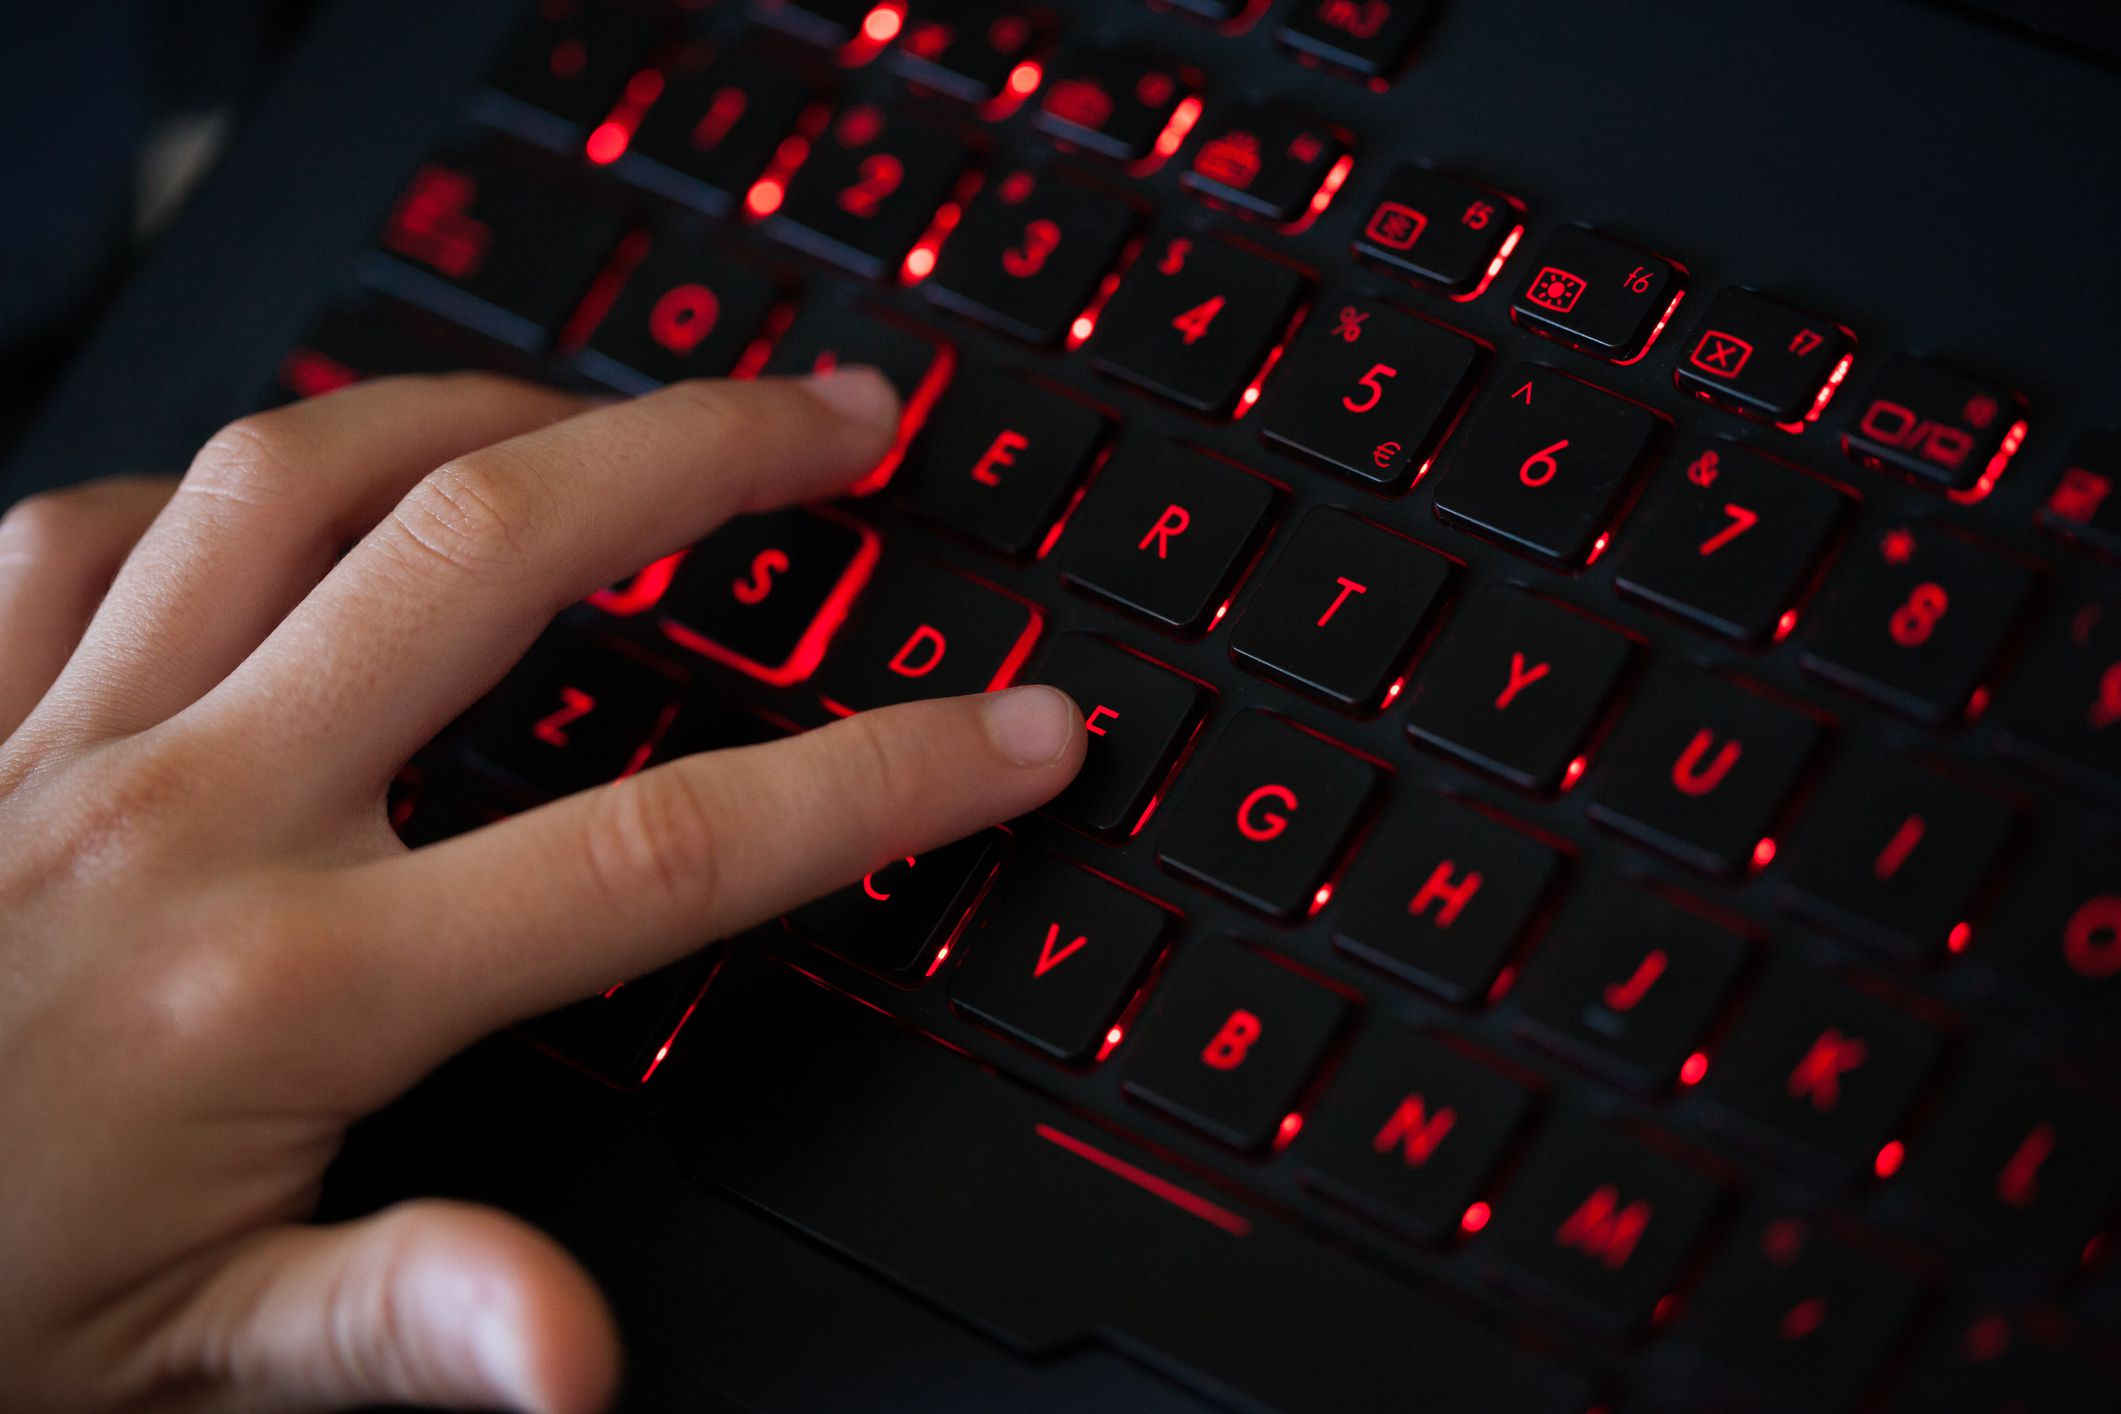 The 8 Best Wireless Gaming Keyboards of 2019